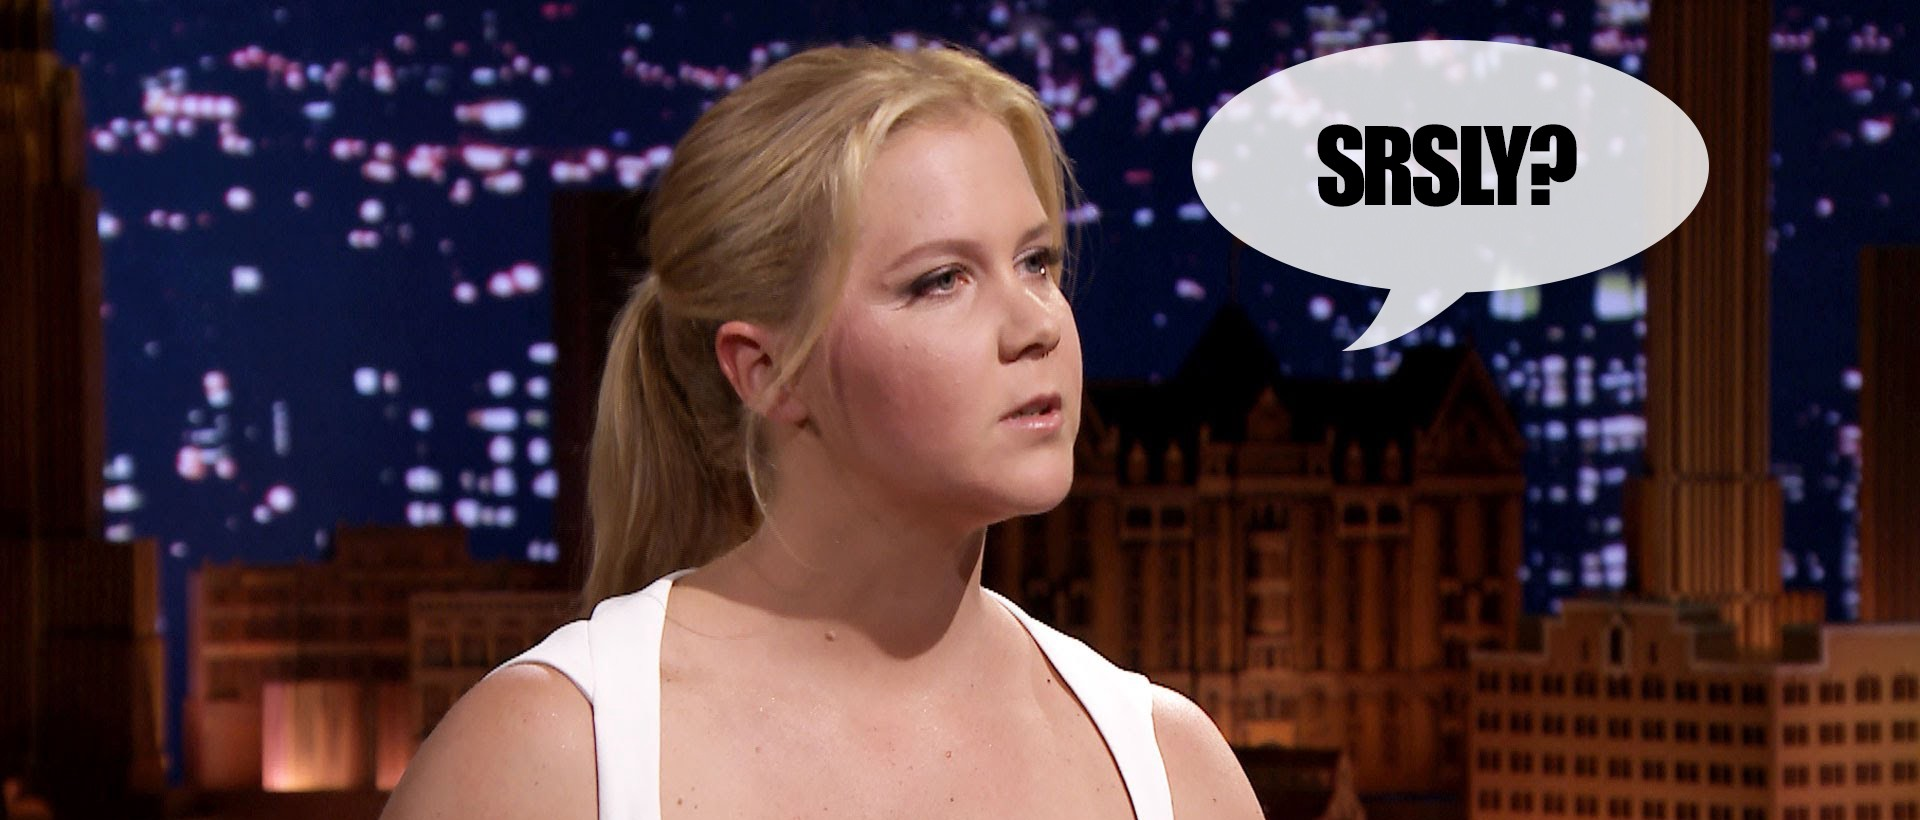 Amy Schumer Fucked amy schumer isn't fat enough for some feminists; making